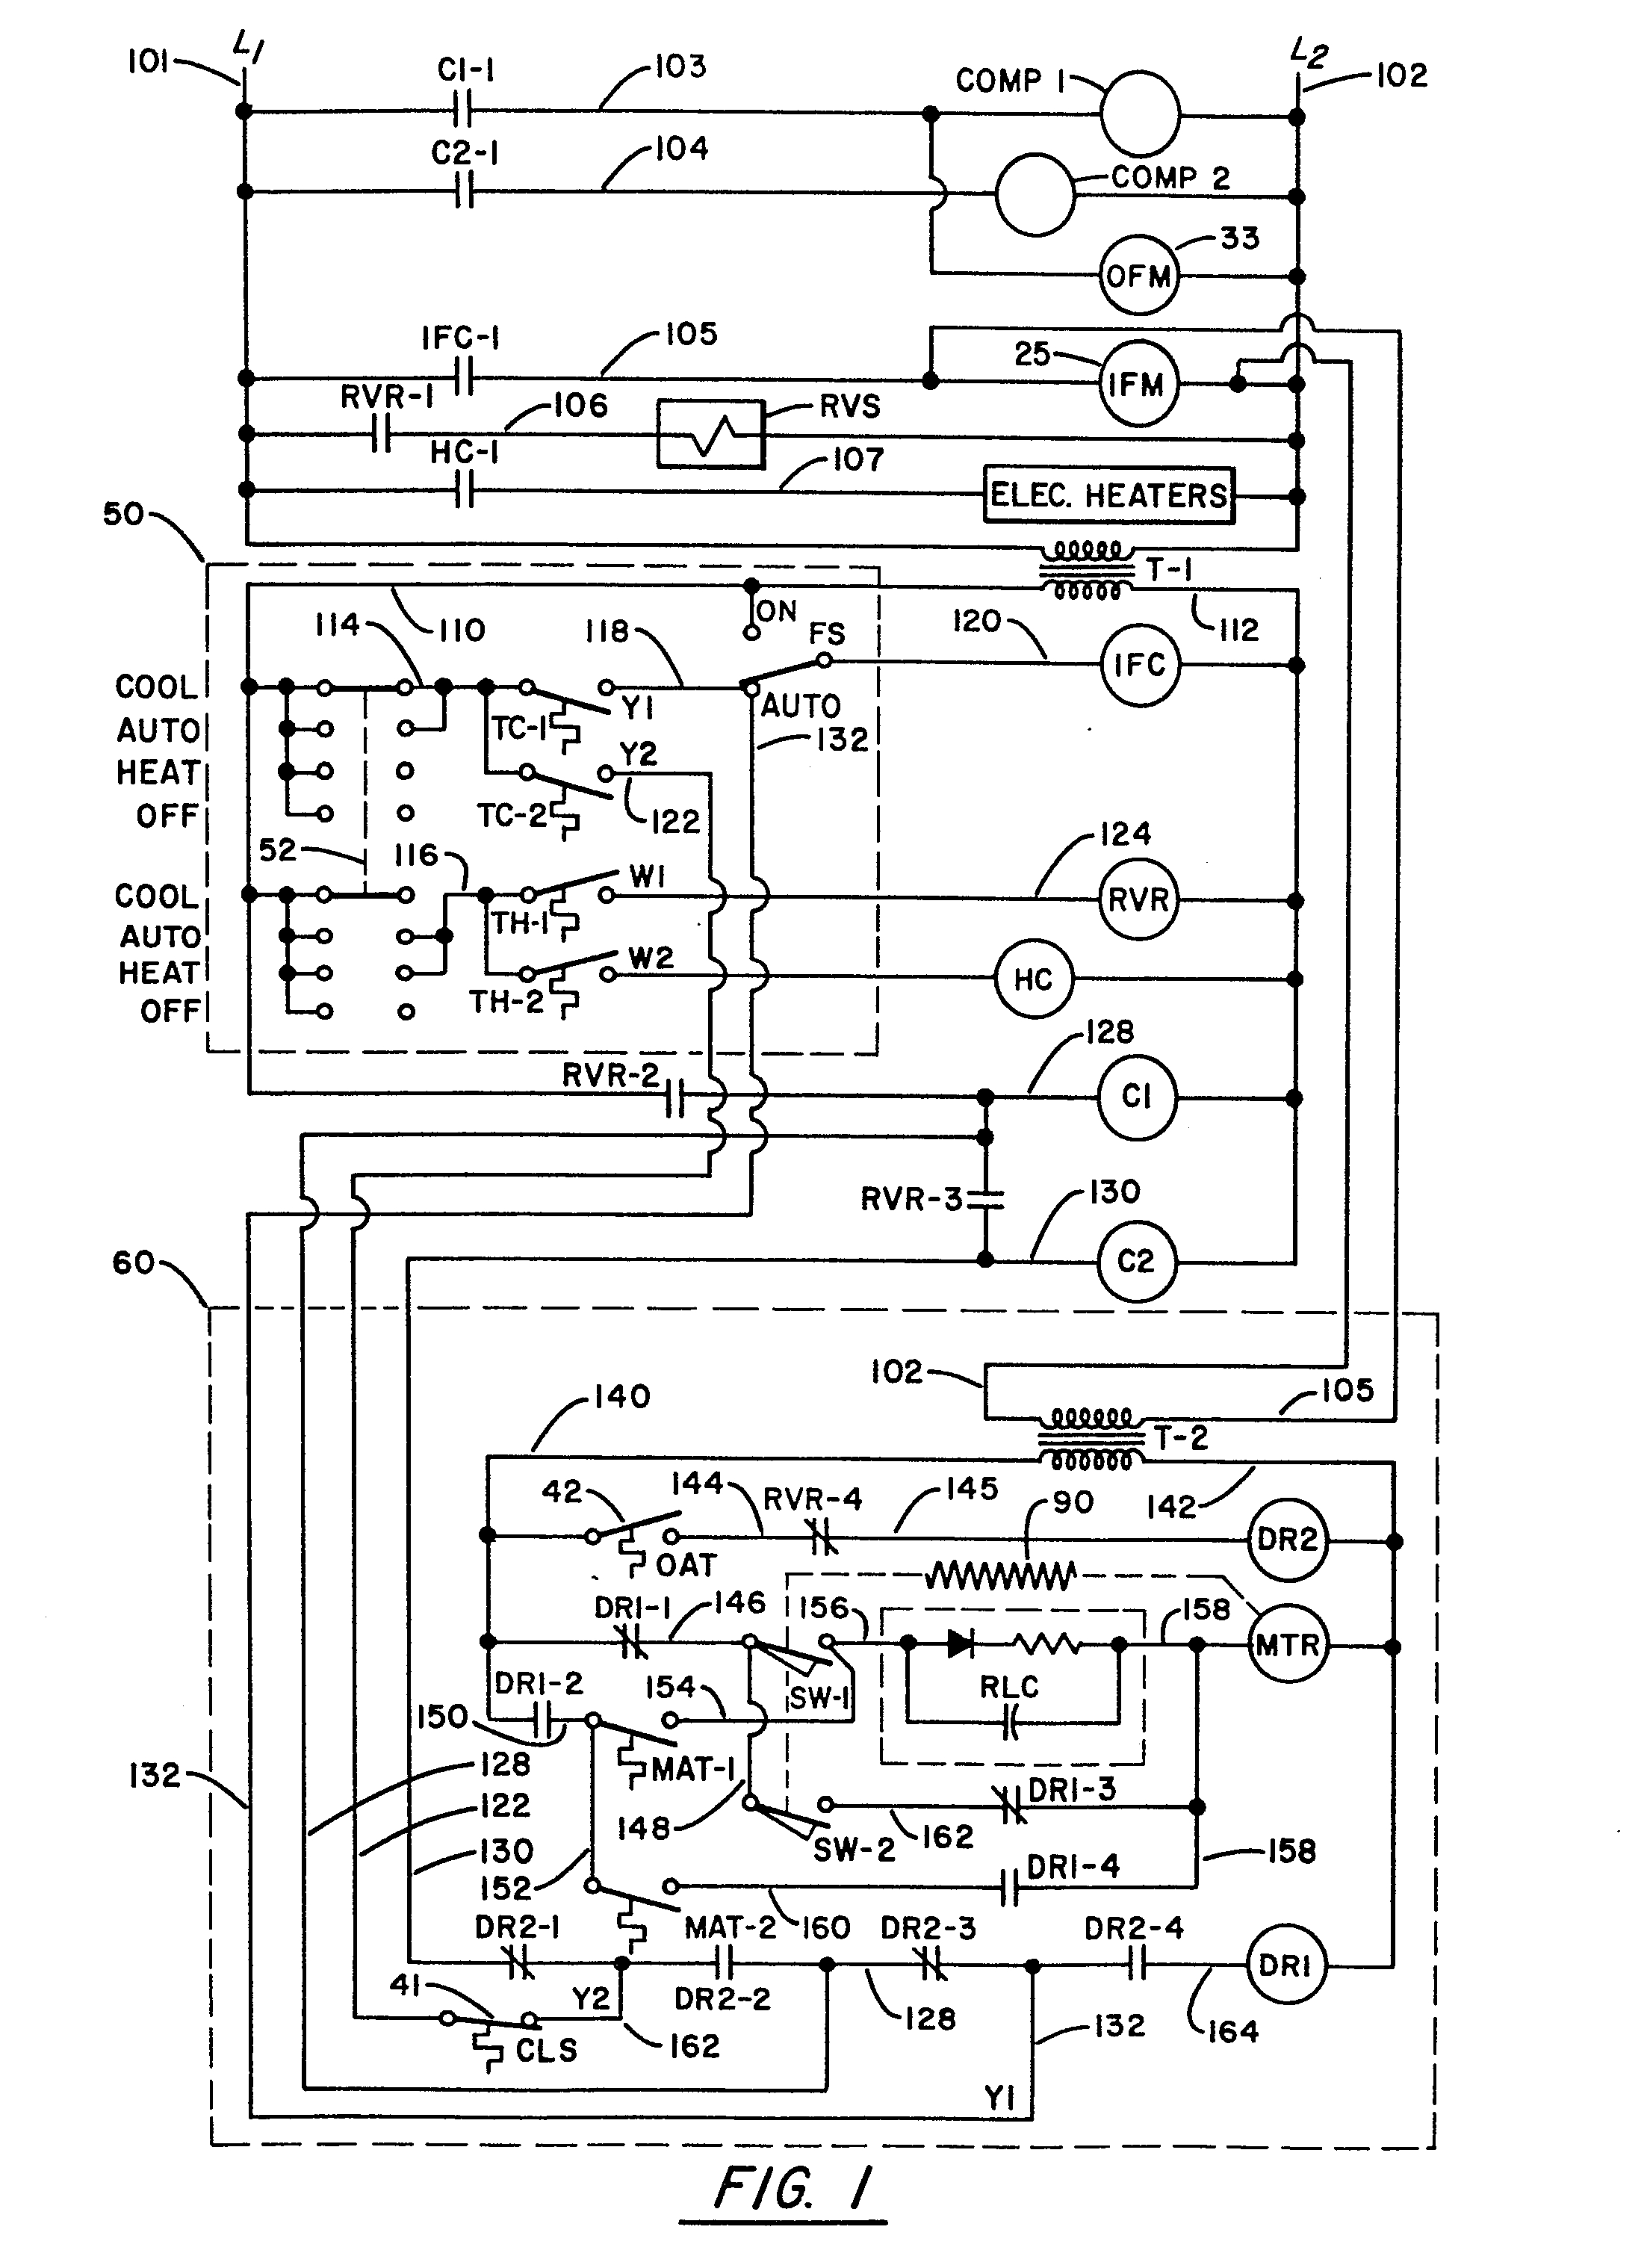 aaon rooftop units wiring diagram Collection-Wiring Diagram for Trane Air Conditioner Inspirational Lovely Free Easy Trane thermostat Wiring Diagram Detail 15-r